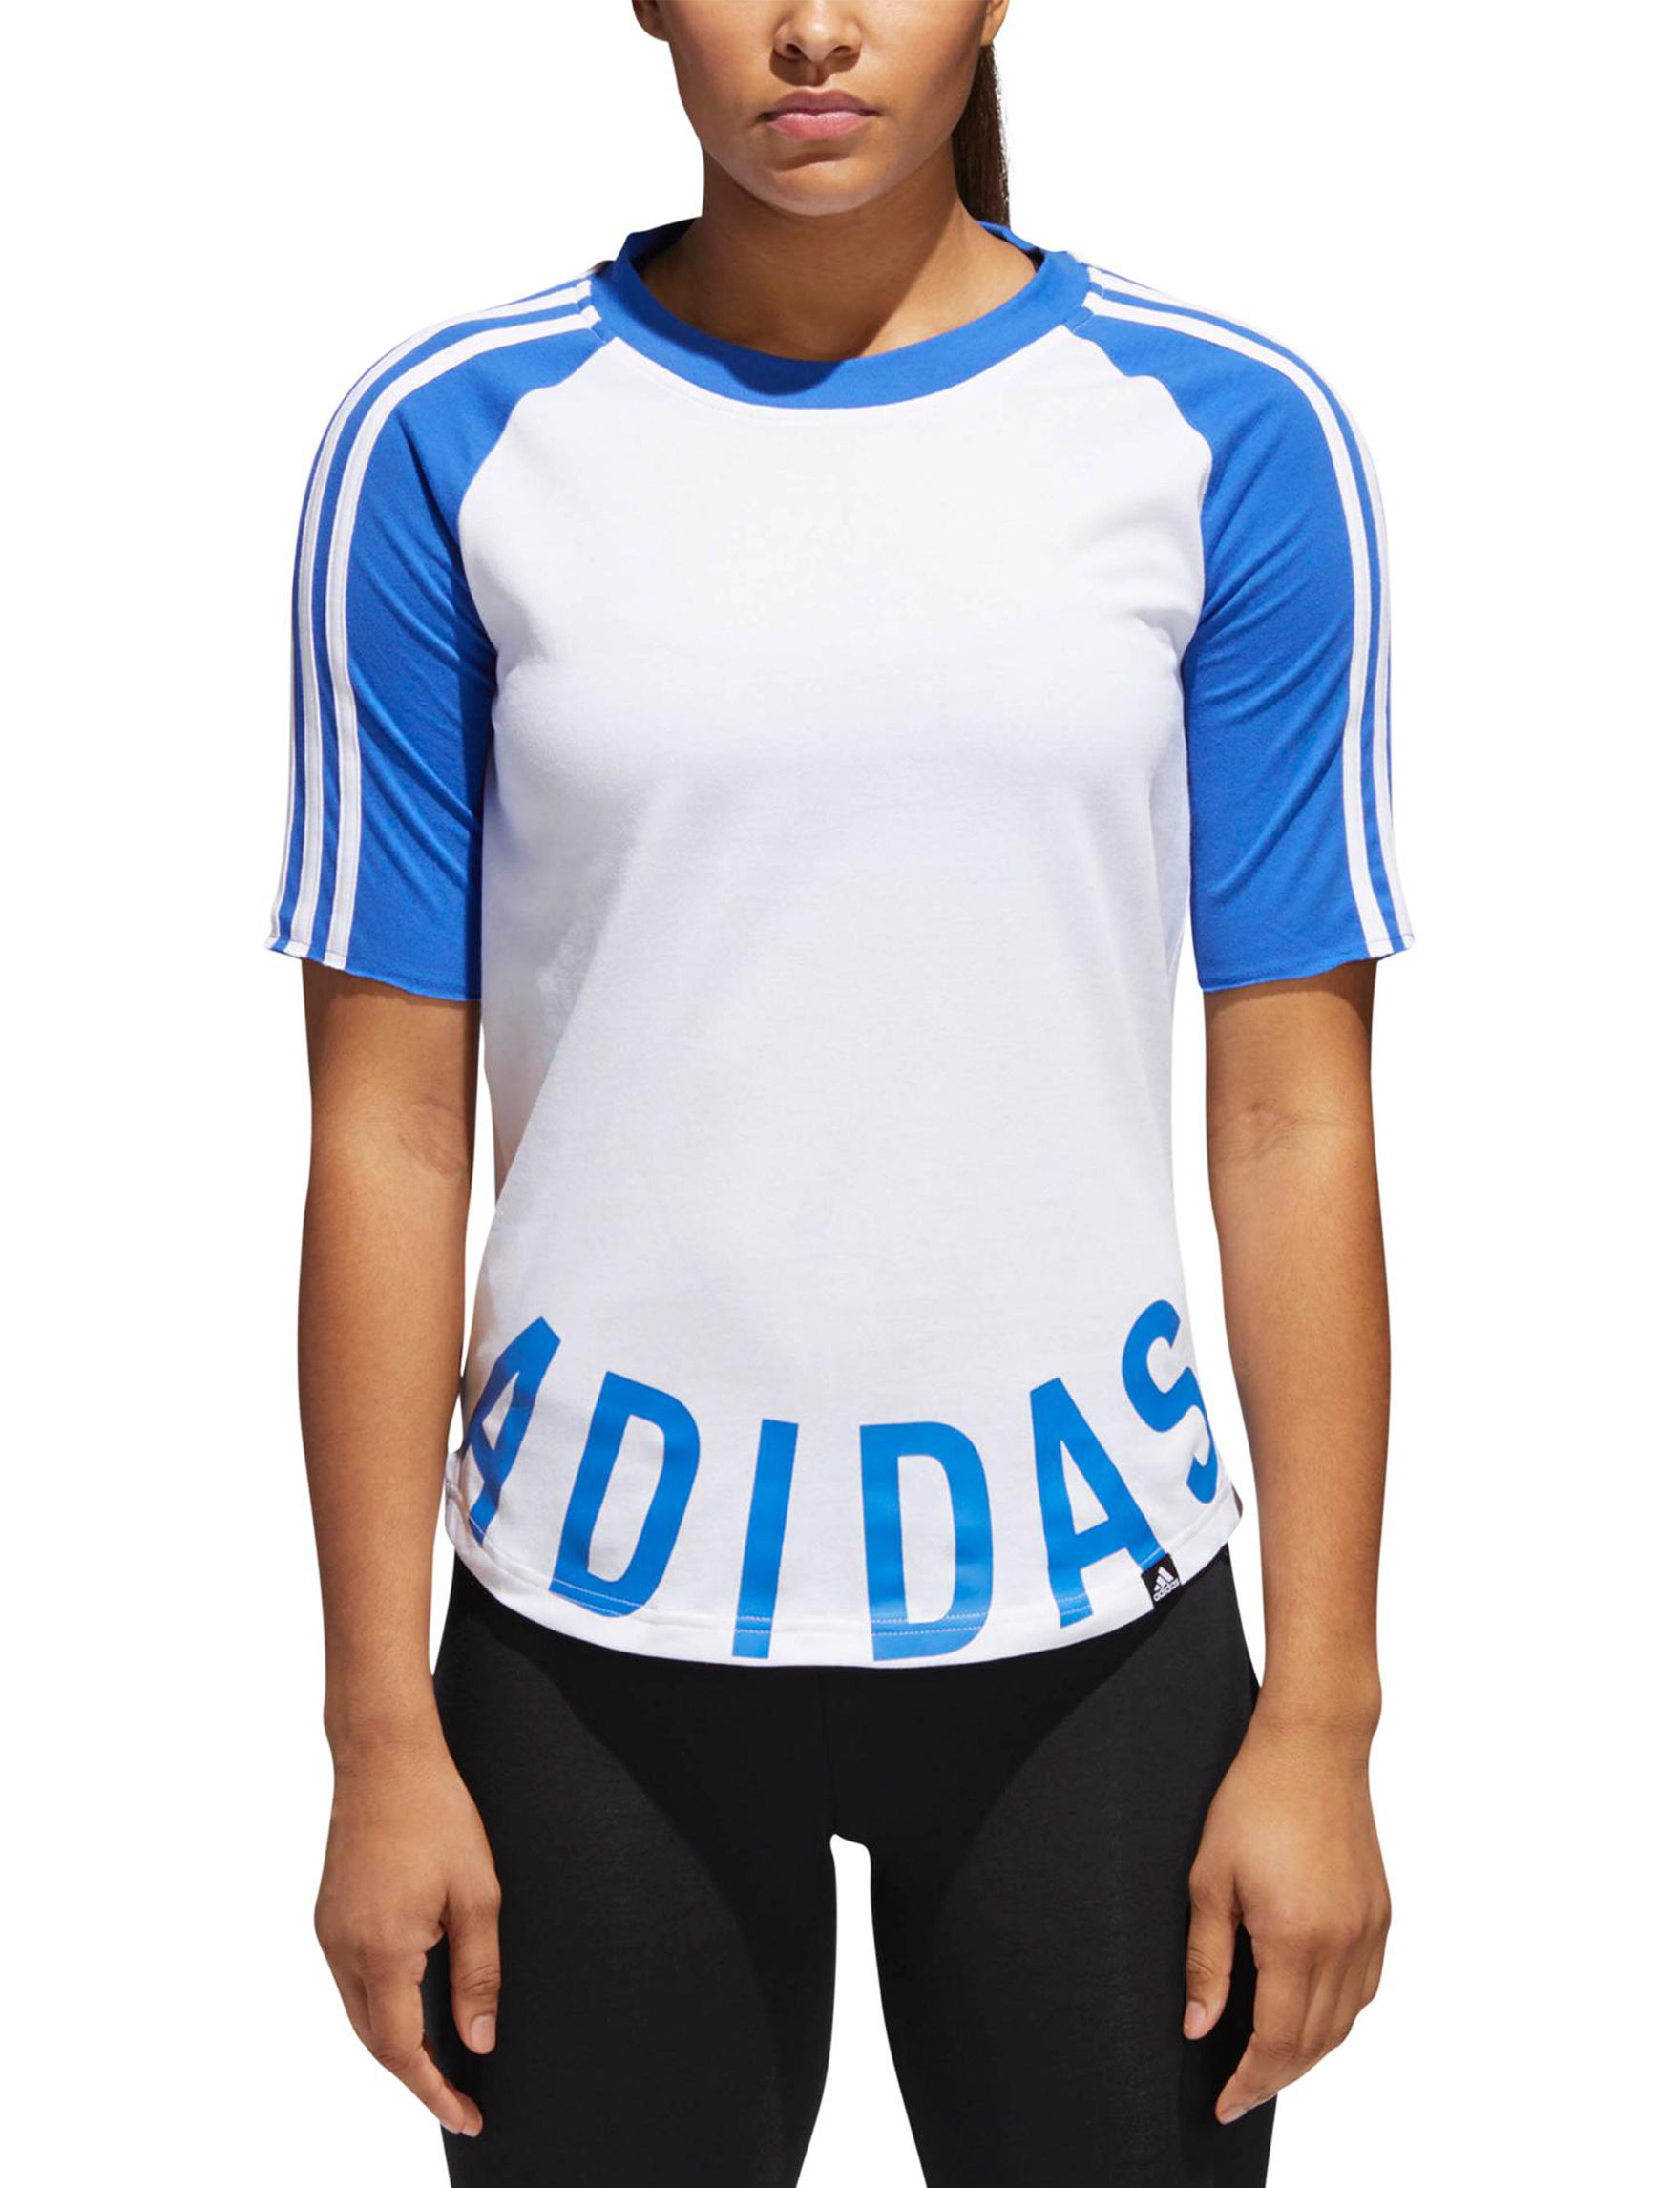 Adidas White / Blue Tees & Tanks